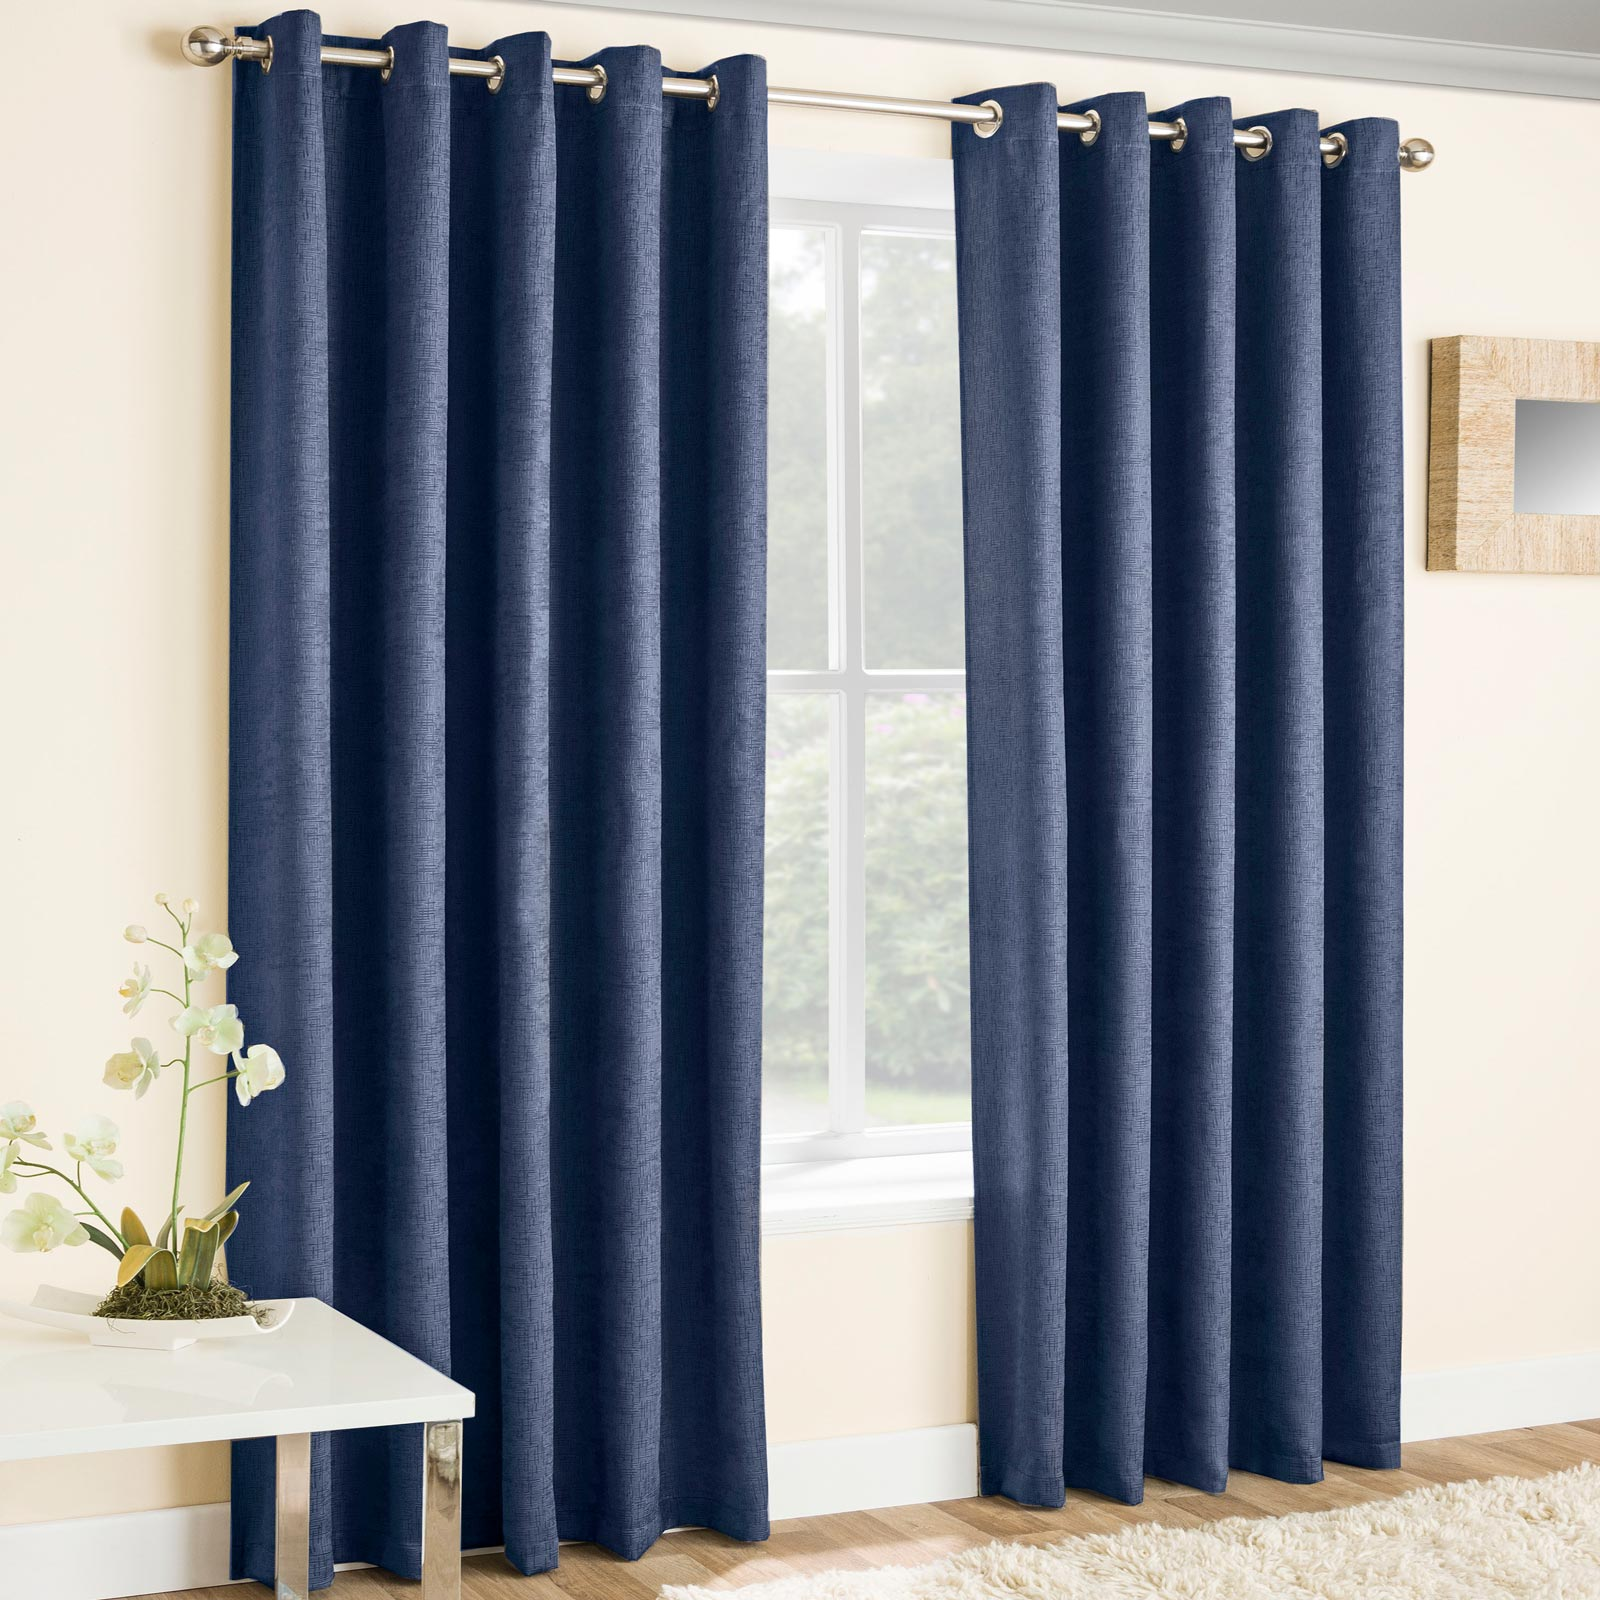 Vogue Textured Block-Out Thermal Eyelet Curtains Navy - 46'' x 54'' - Ideal Textiles